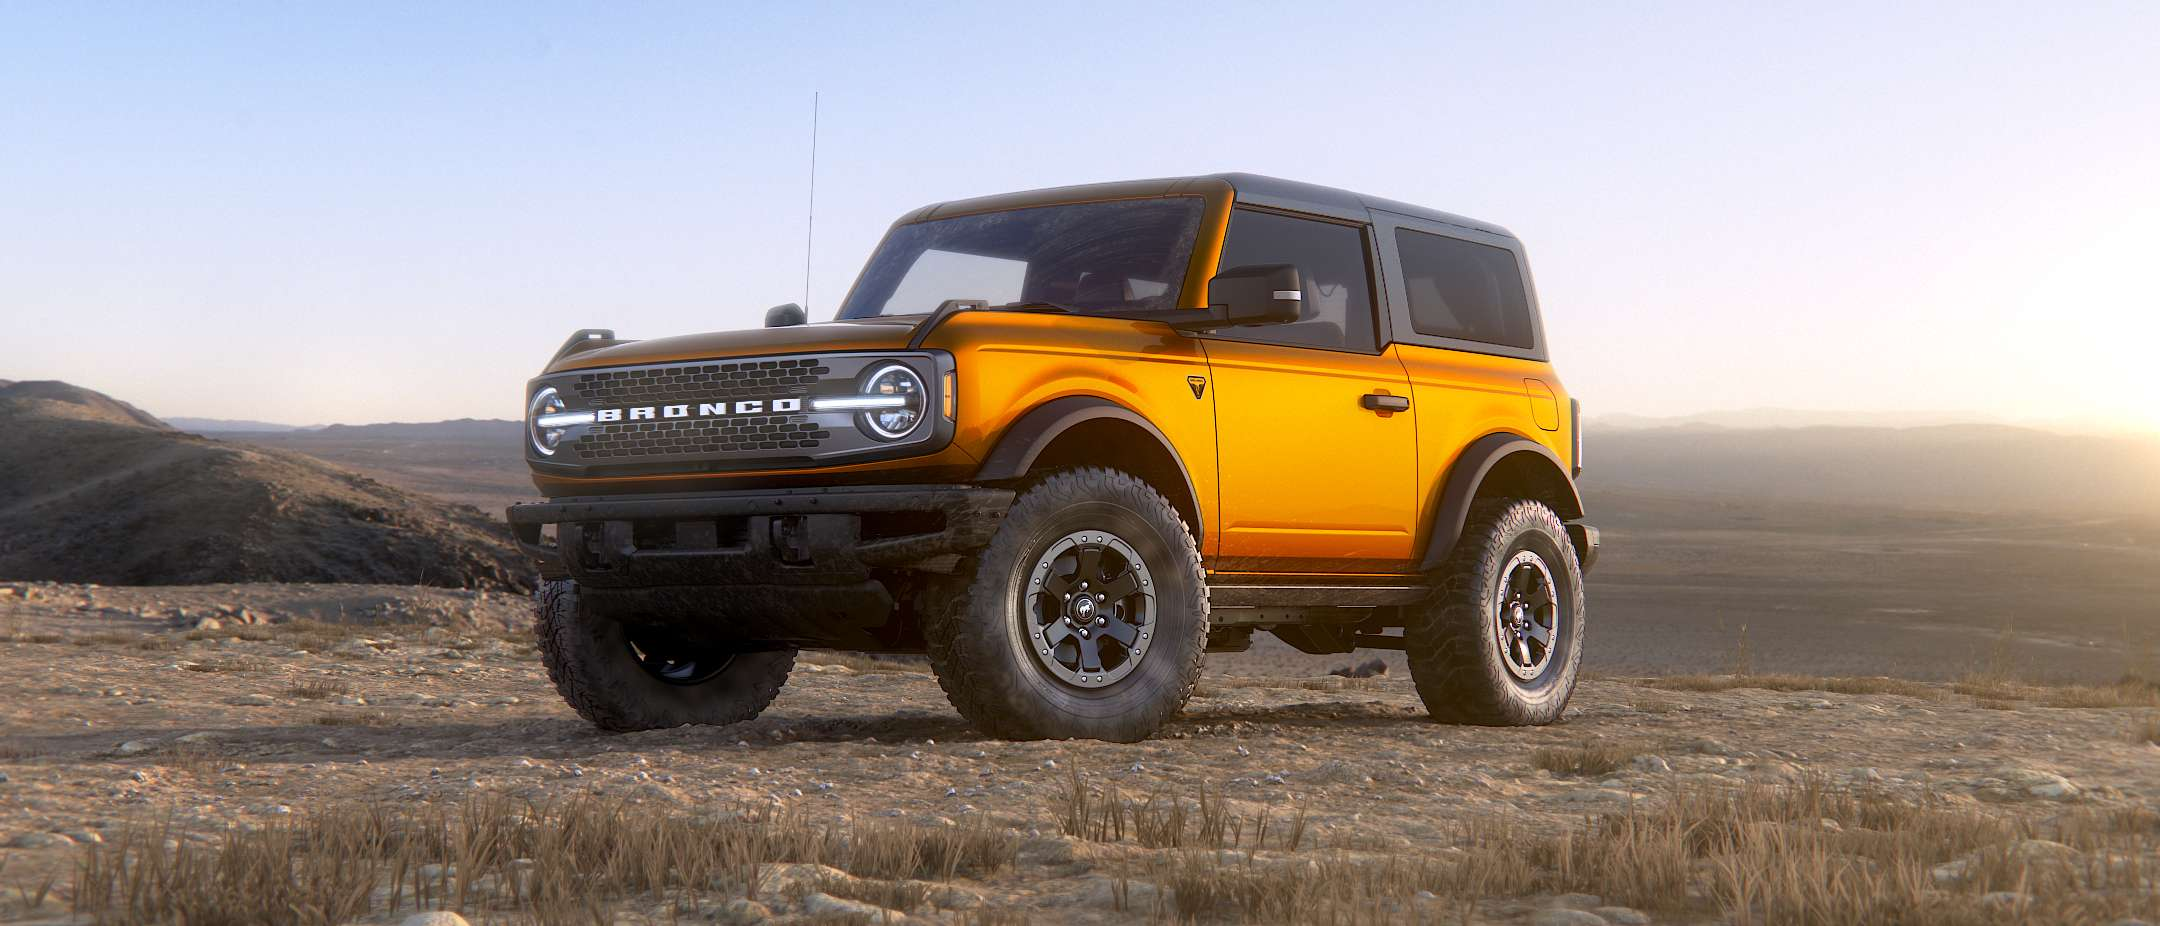 2021 Ford Bronco exterior colors